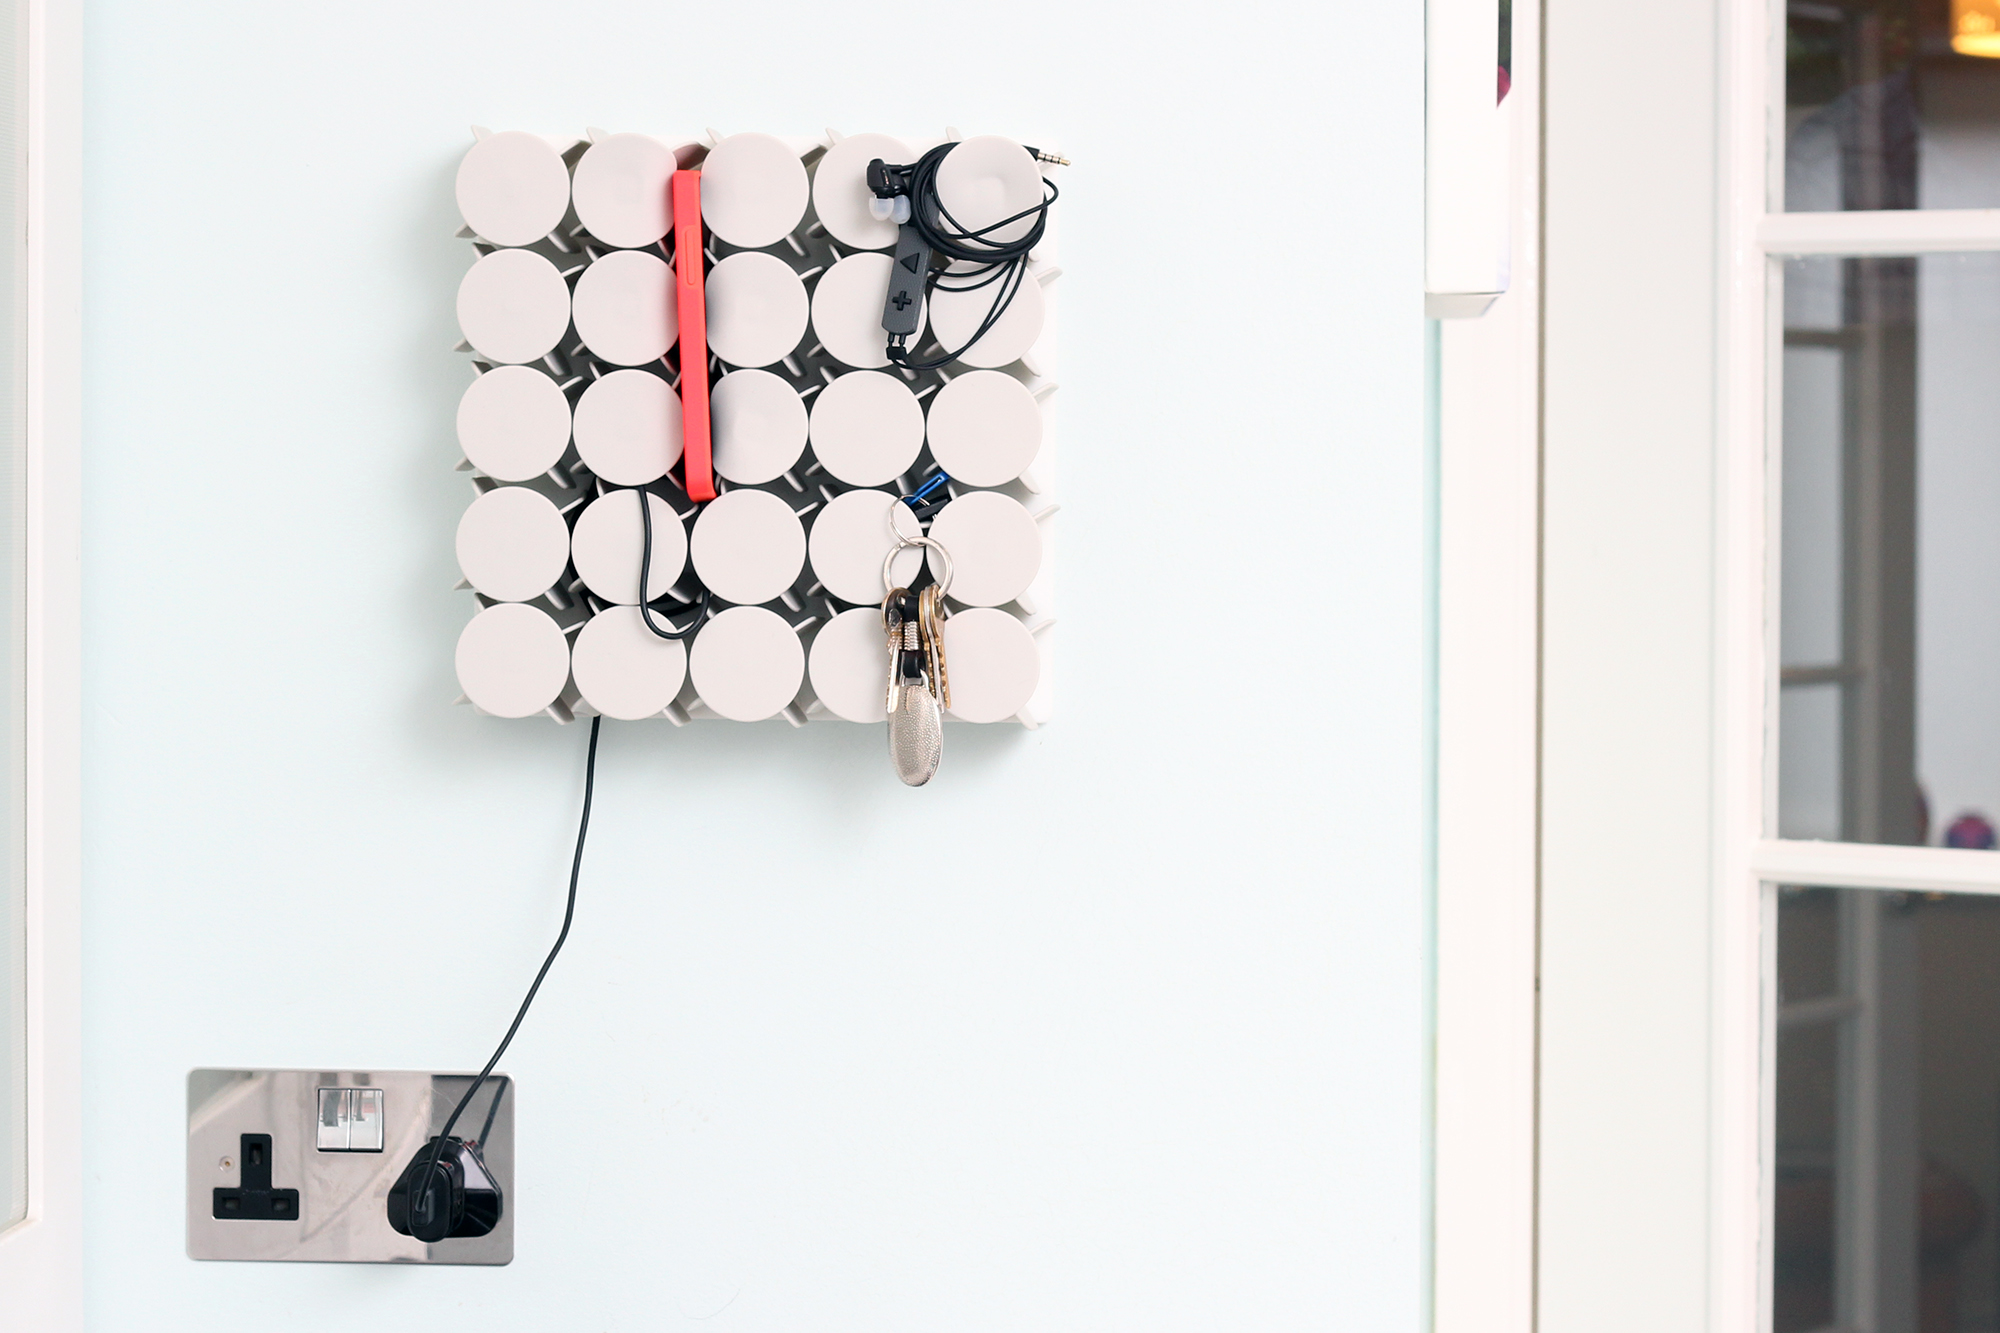 Geco Hub Phone Charger Geco Hub Flexible Wall Mounted Storage Kickstarter Project